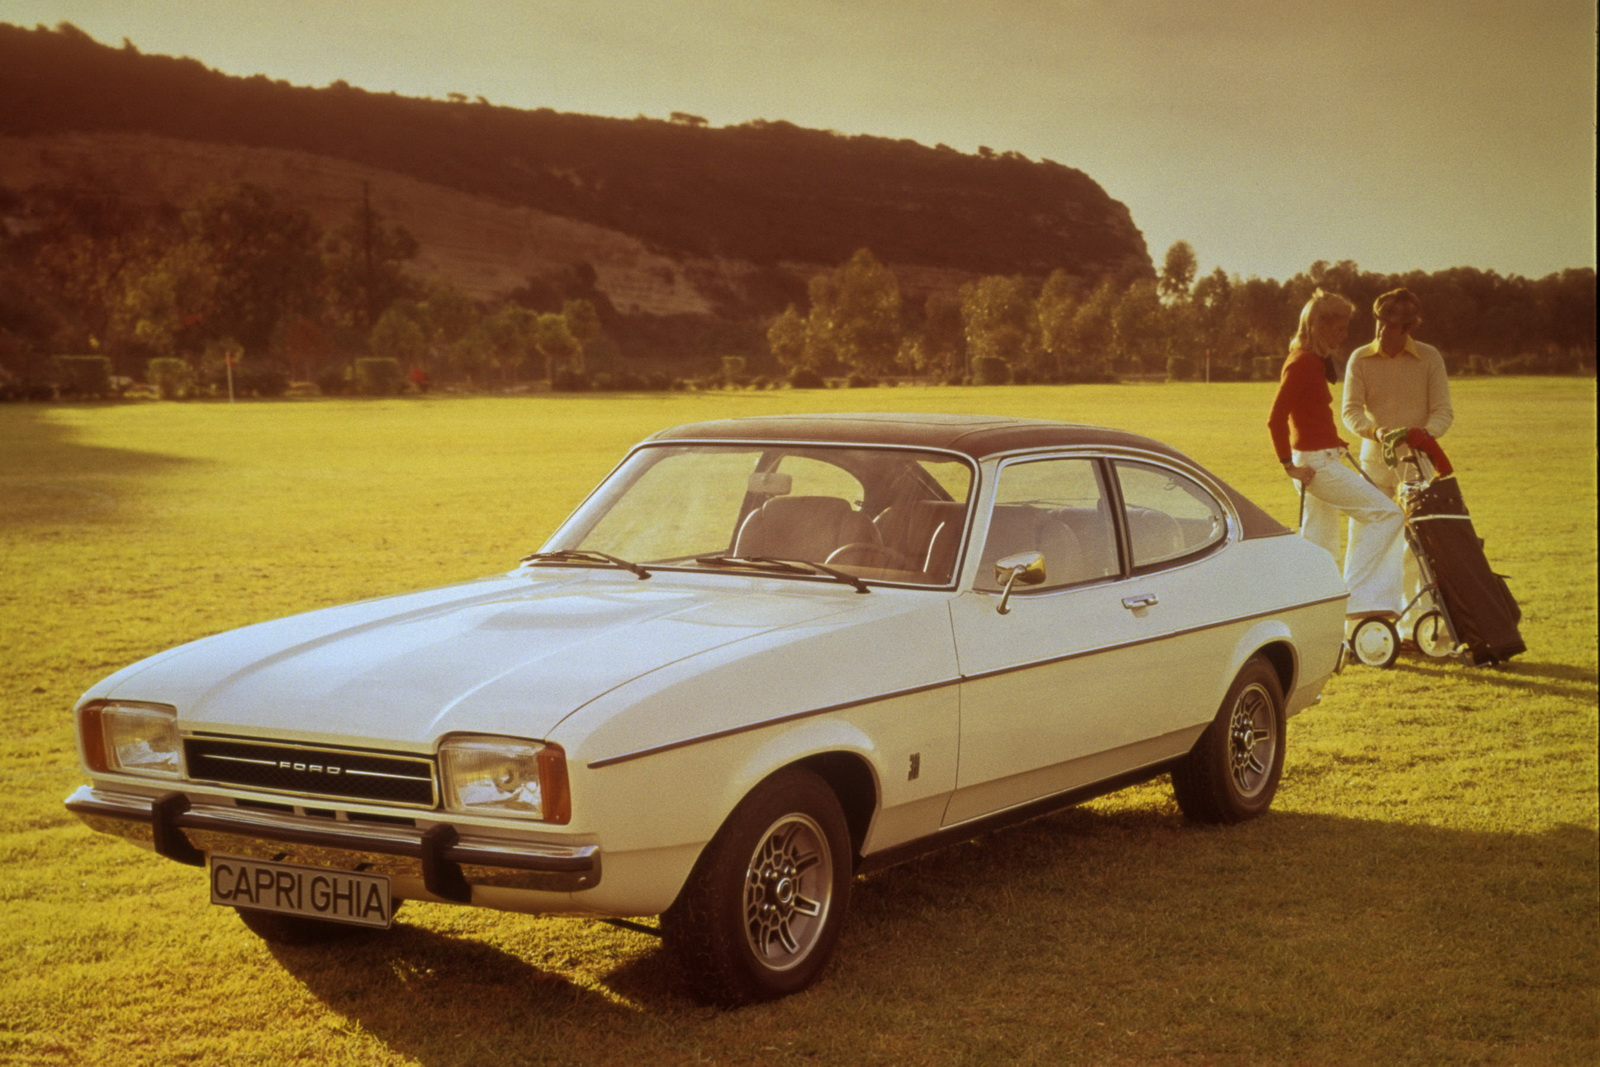 Ford Capri 1974 photo - 8